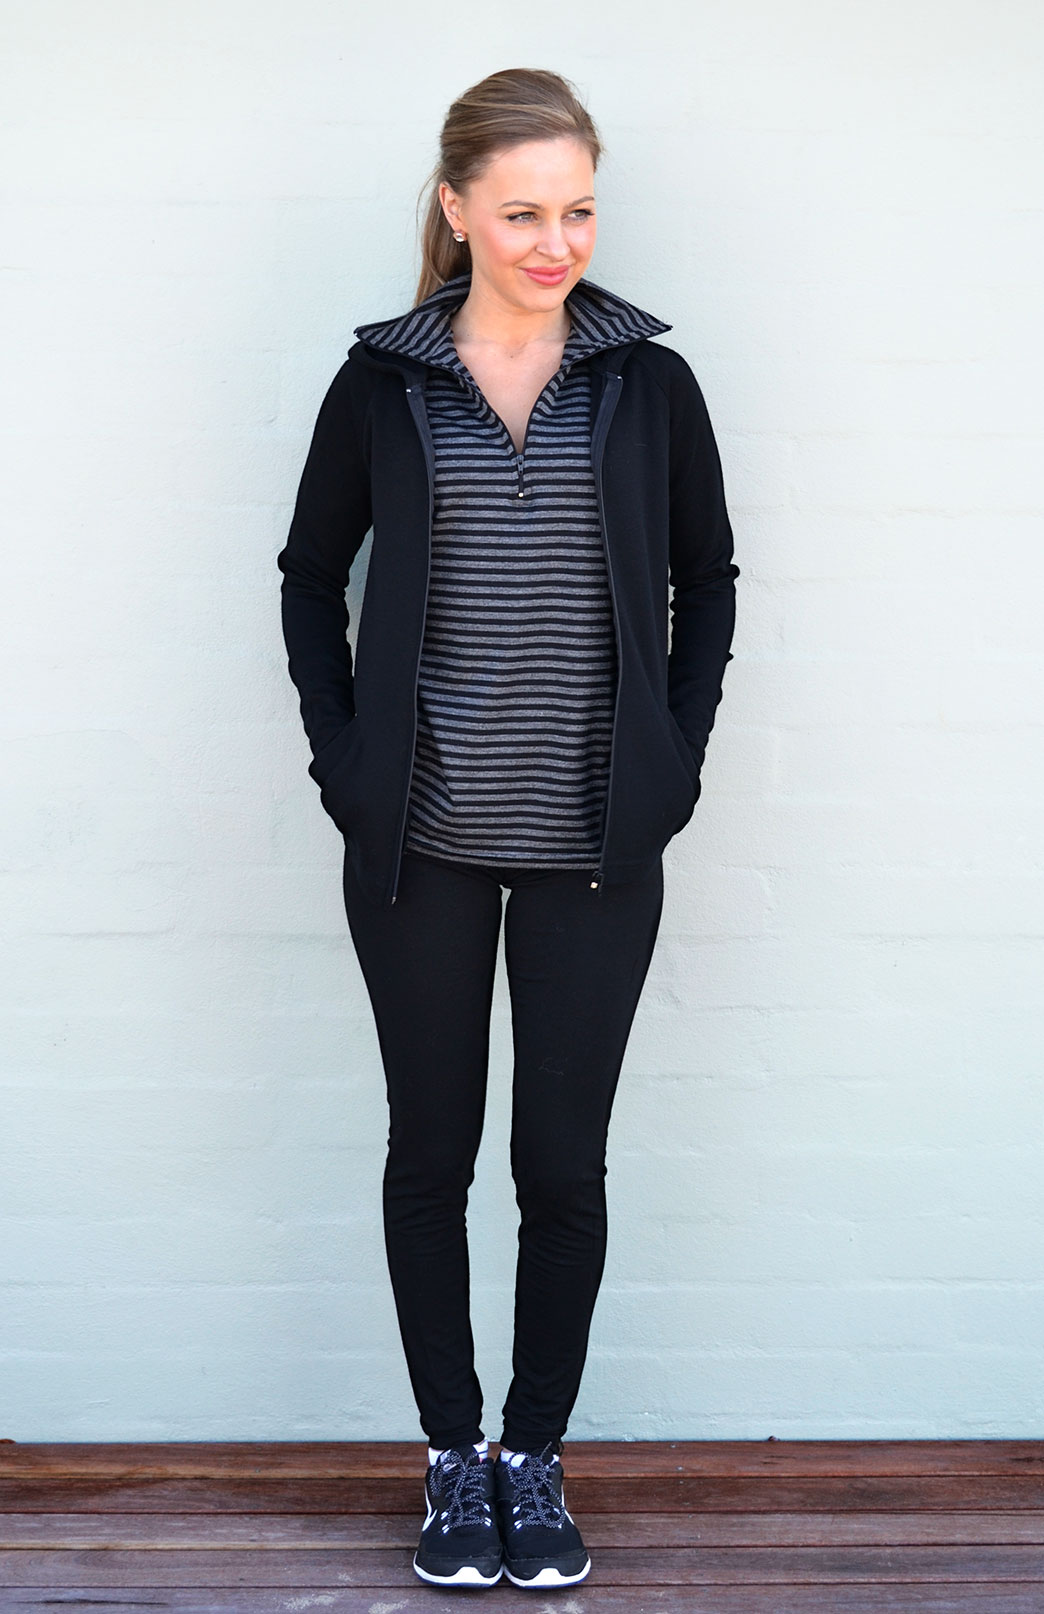 Wool Fleece Hoody Jacket-350g - Women's 100% Merino Wool Fleece Zip Jacket with Hood - Smitten Merino Tasmania Australia